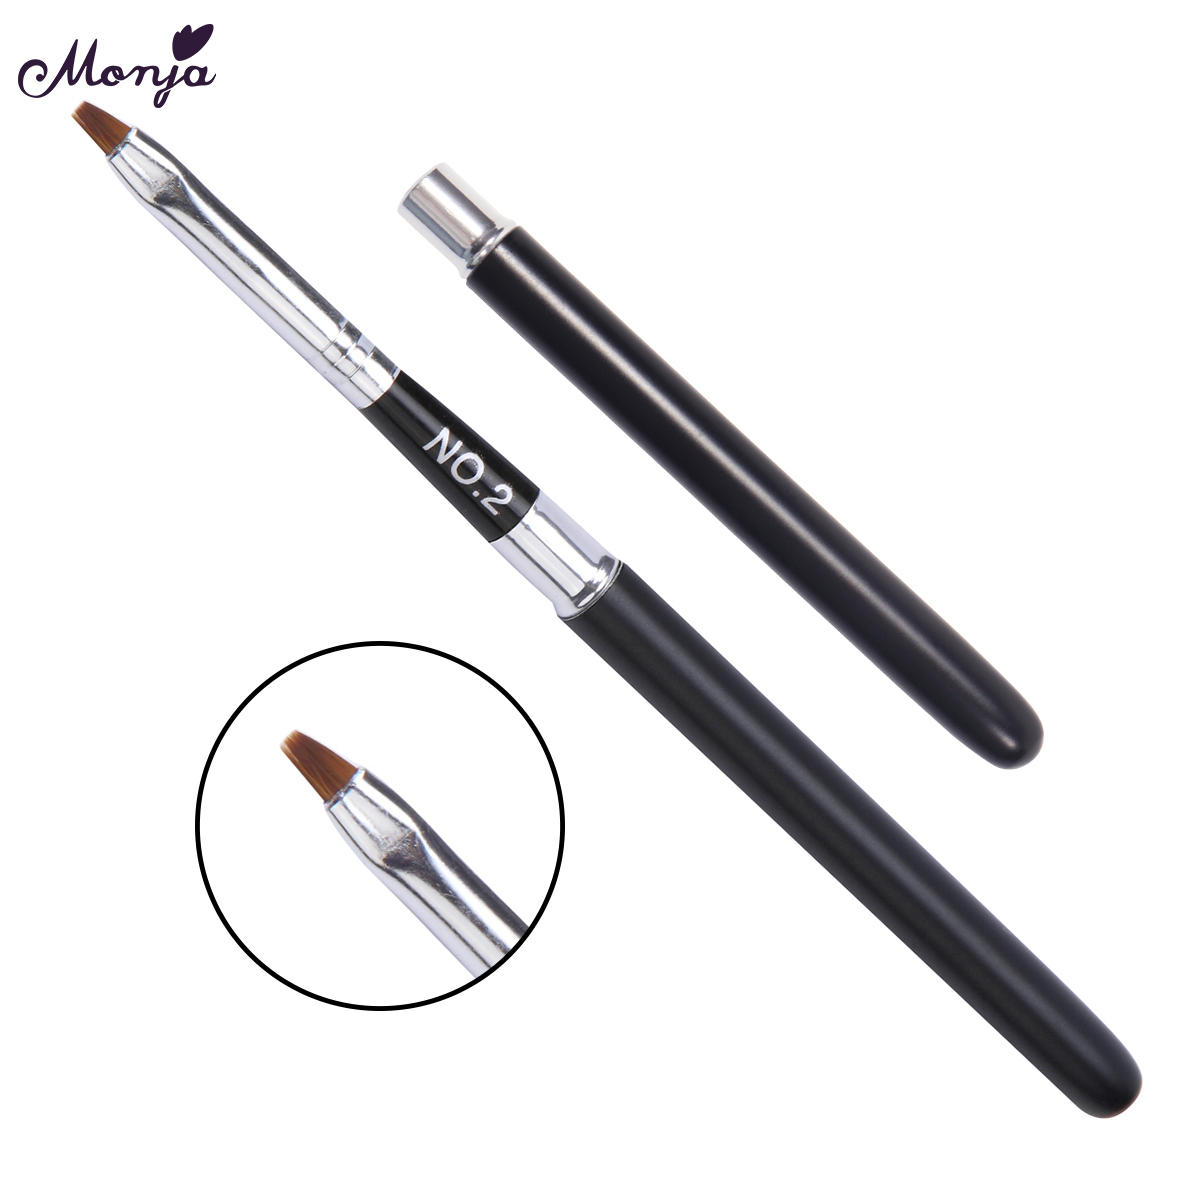 Gold Silver Metal Handle Lip Gloss Makeup Brush Portable Retractable Adjustable Lipstick Brush With Protect Cap Cosmetic Tool